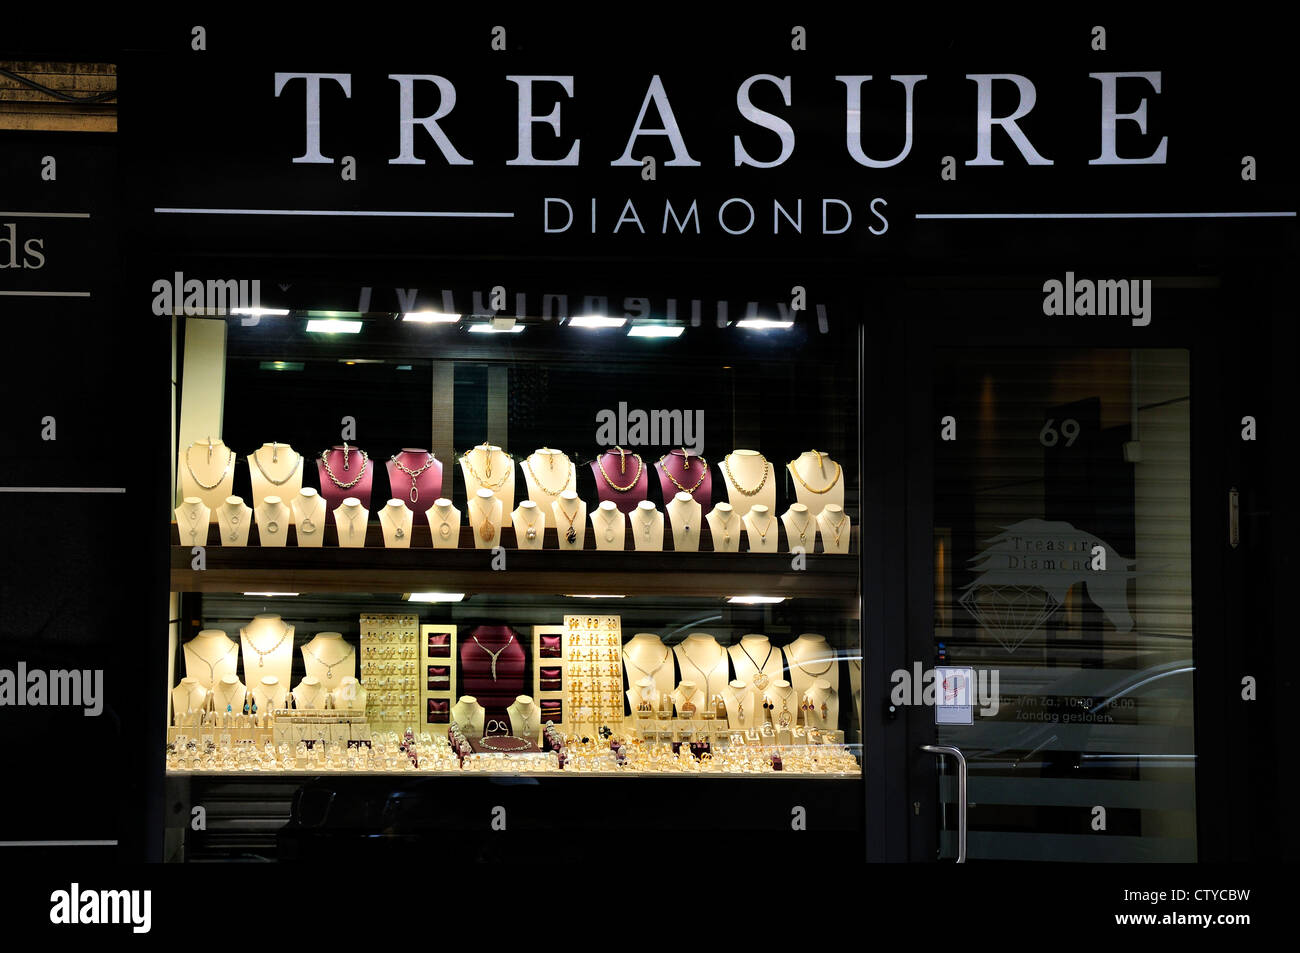 antwerp diamond photos shop image stock window photo